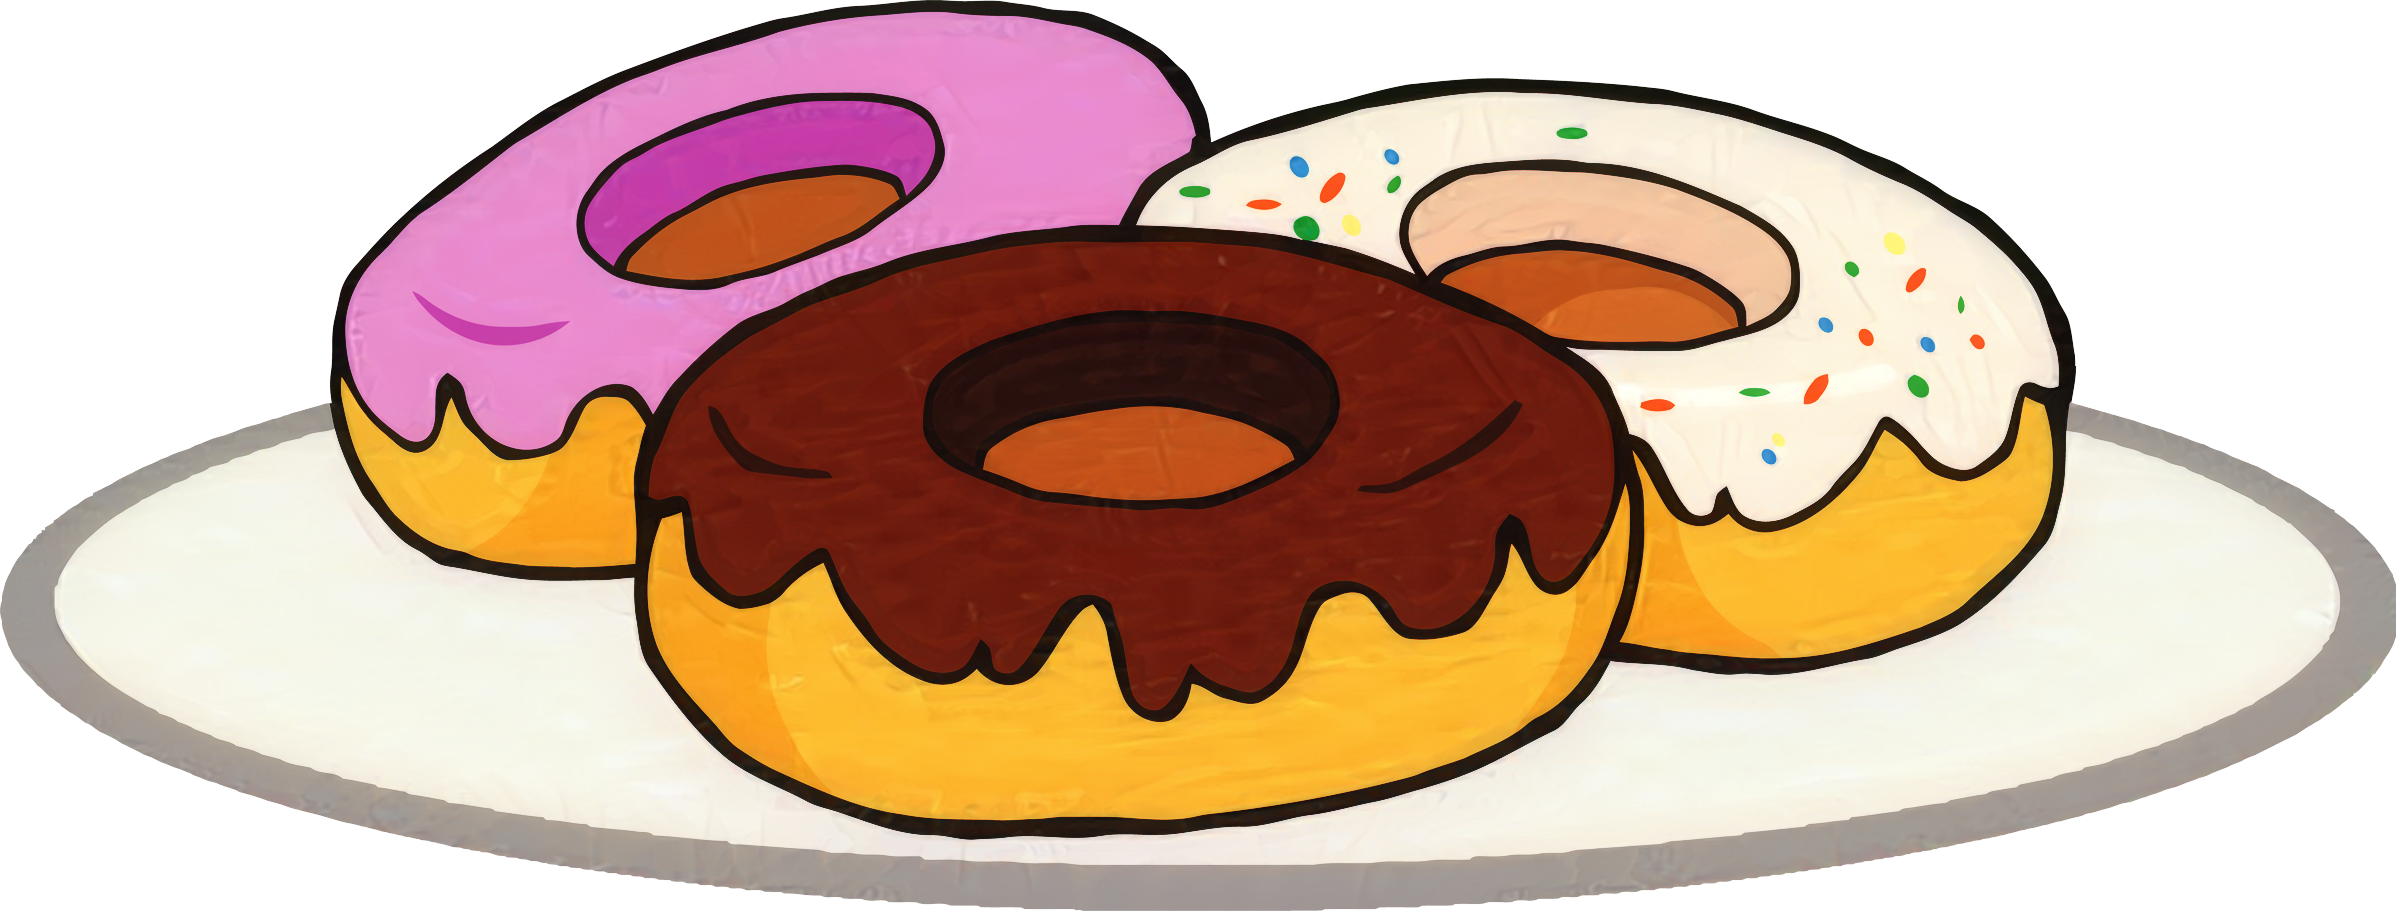 Coffee and doughnuts Donuts Clip art Vector graphics.